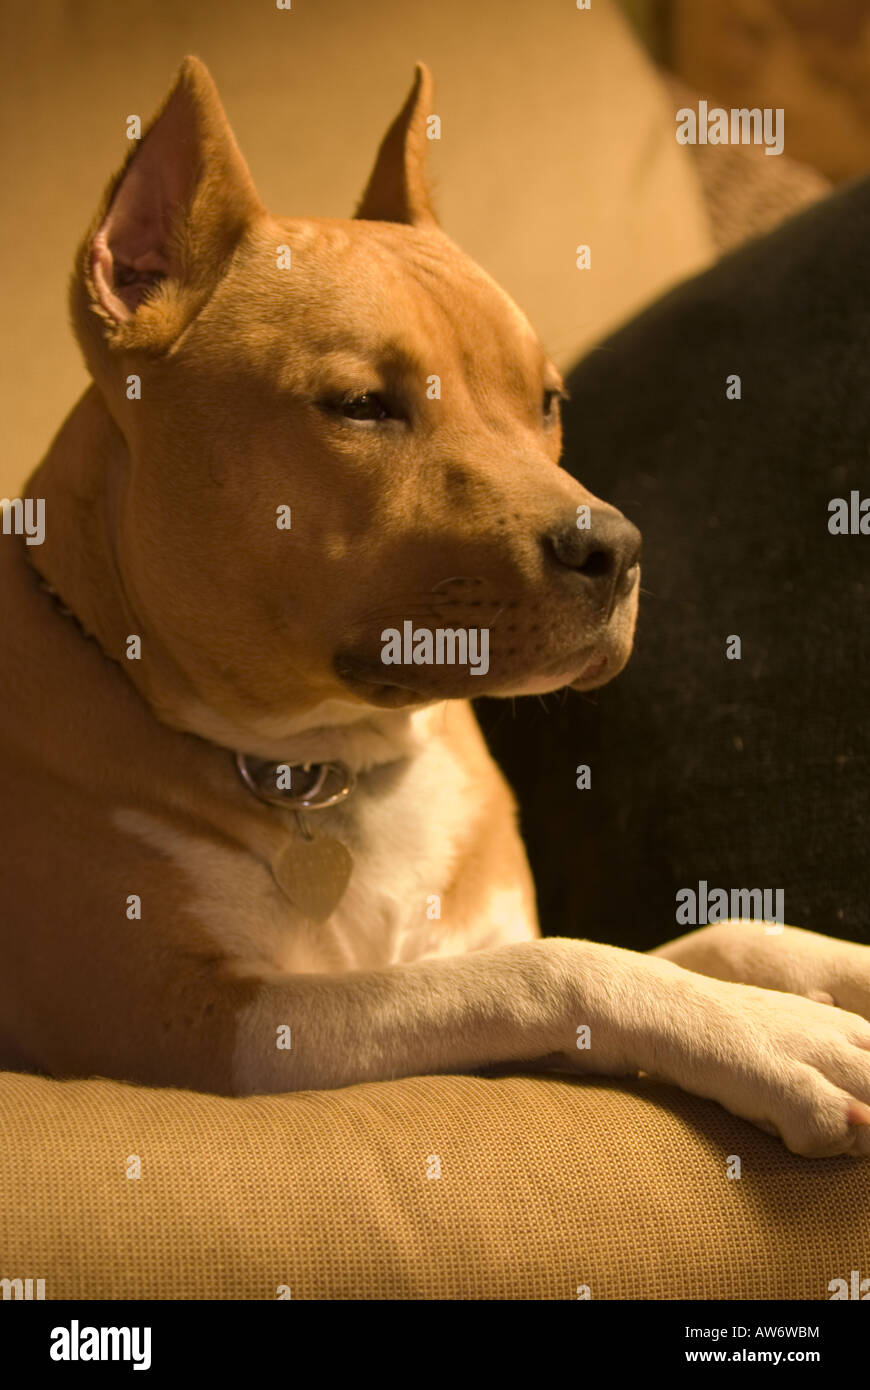 Handsome Pit Bull Portrait - Stock Image